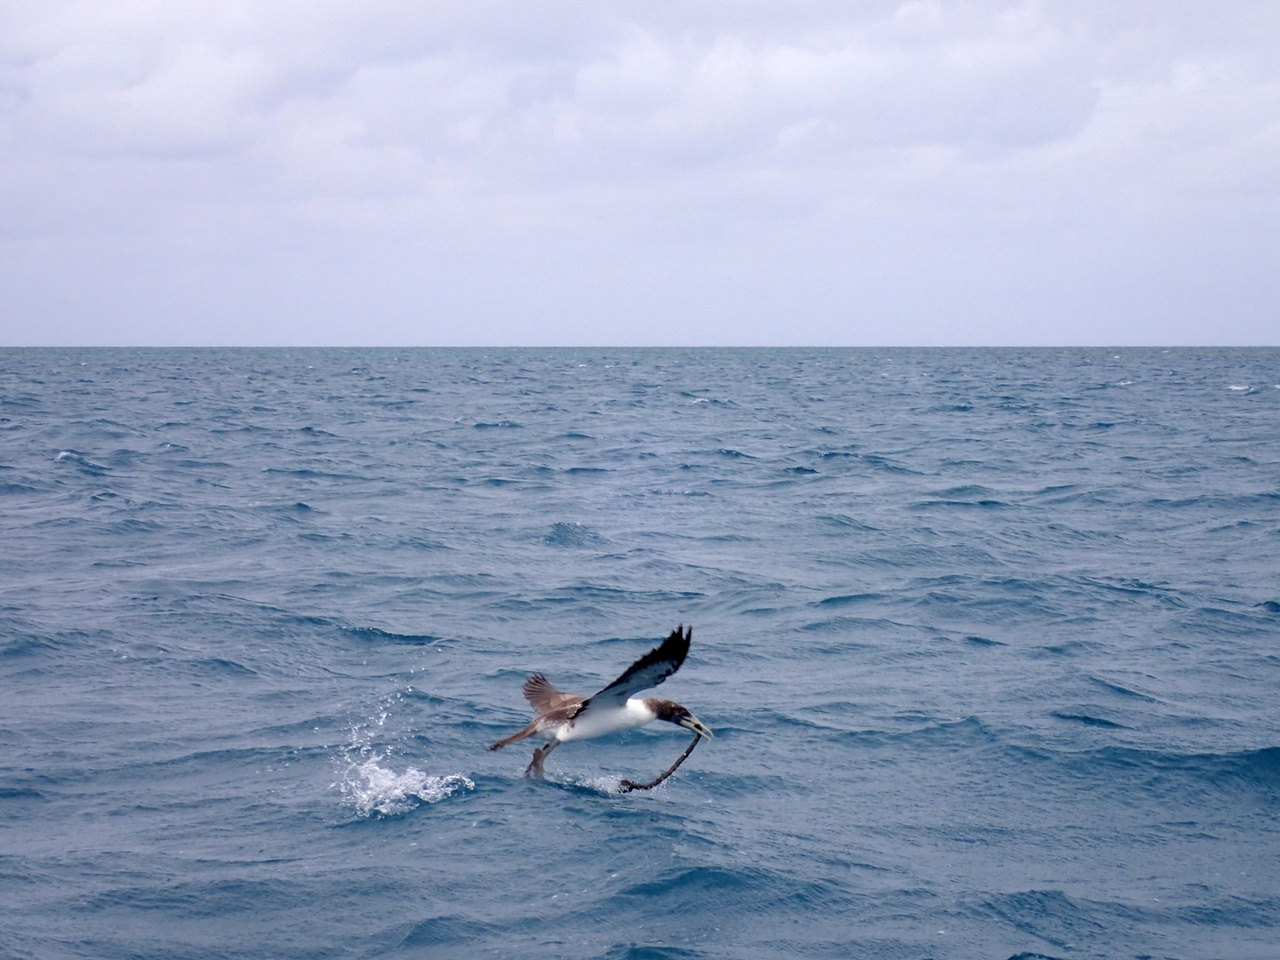 A brown booby plucks a piece of floating net from the water and attempts to fly off with it